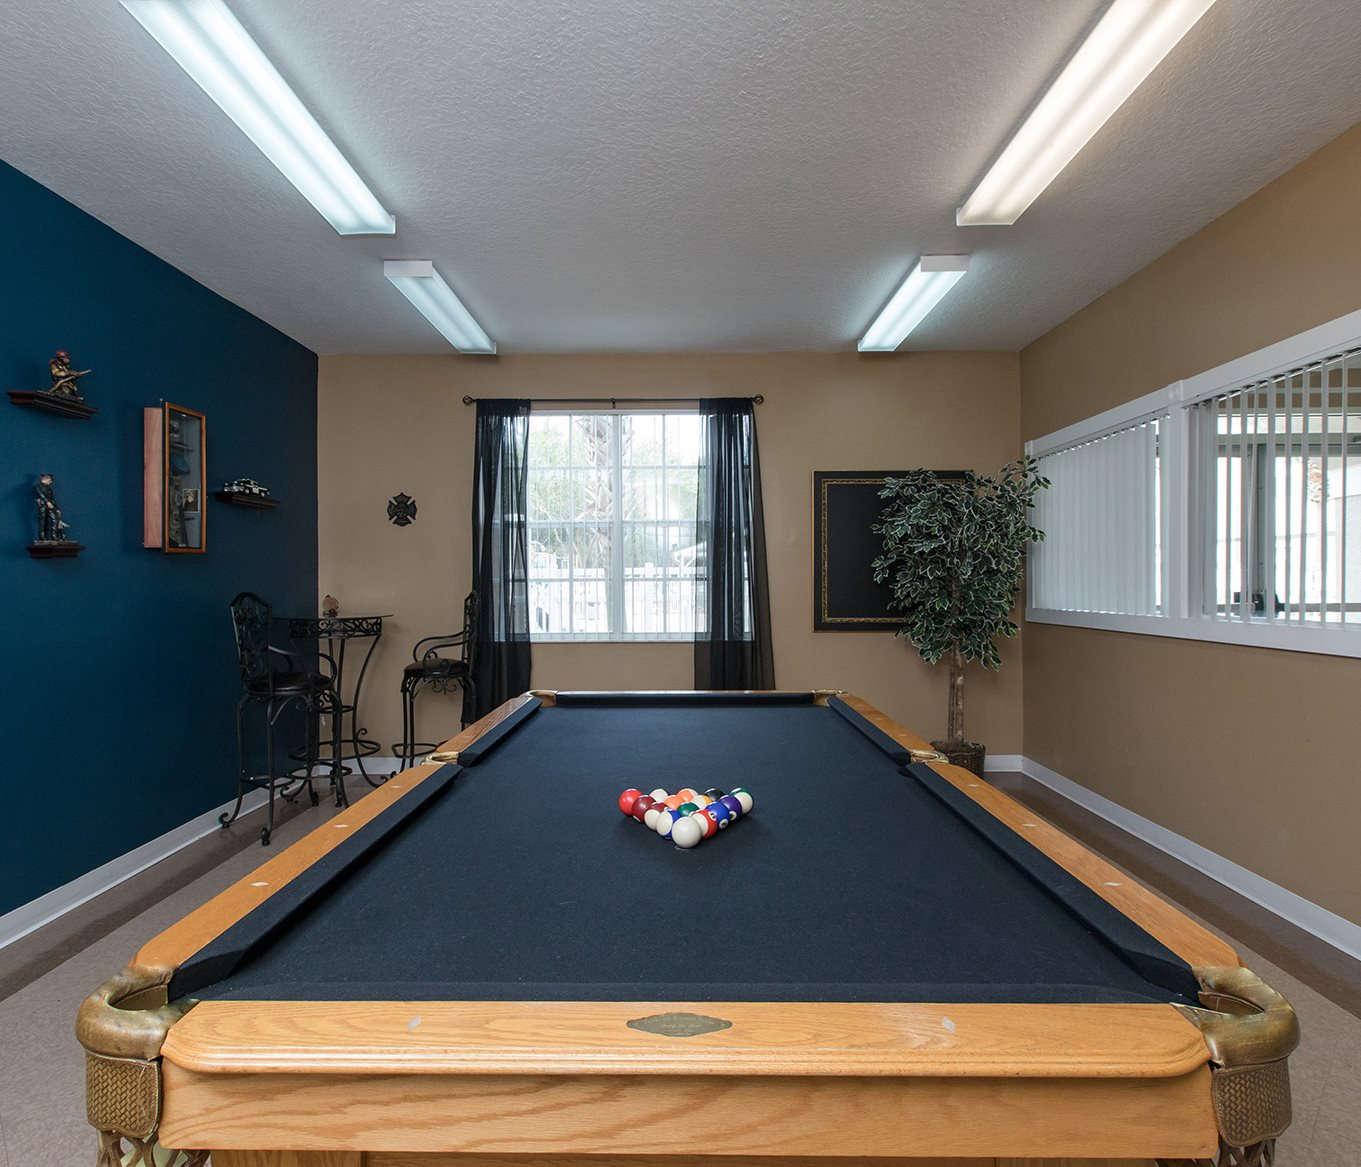 Hunters Creek Apartments for rent in Deland, FL. Make this community your new home or visit other ConcordRENTS communities at ConcordRENTS.com. Pool table